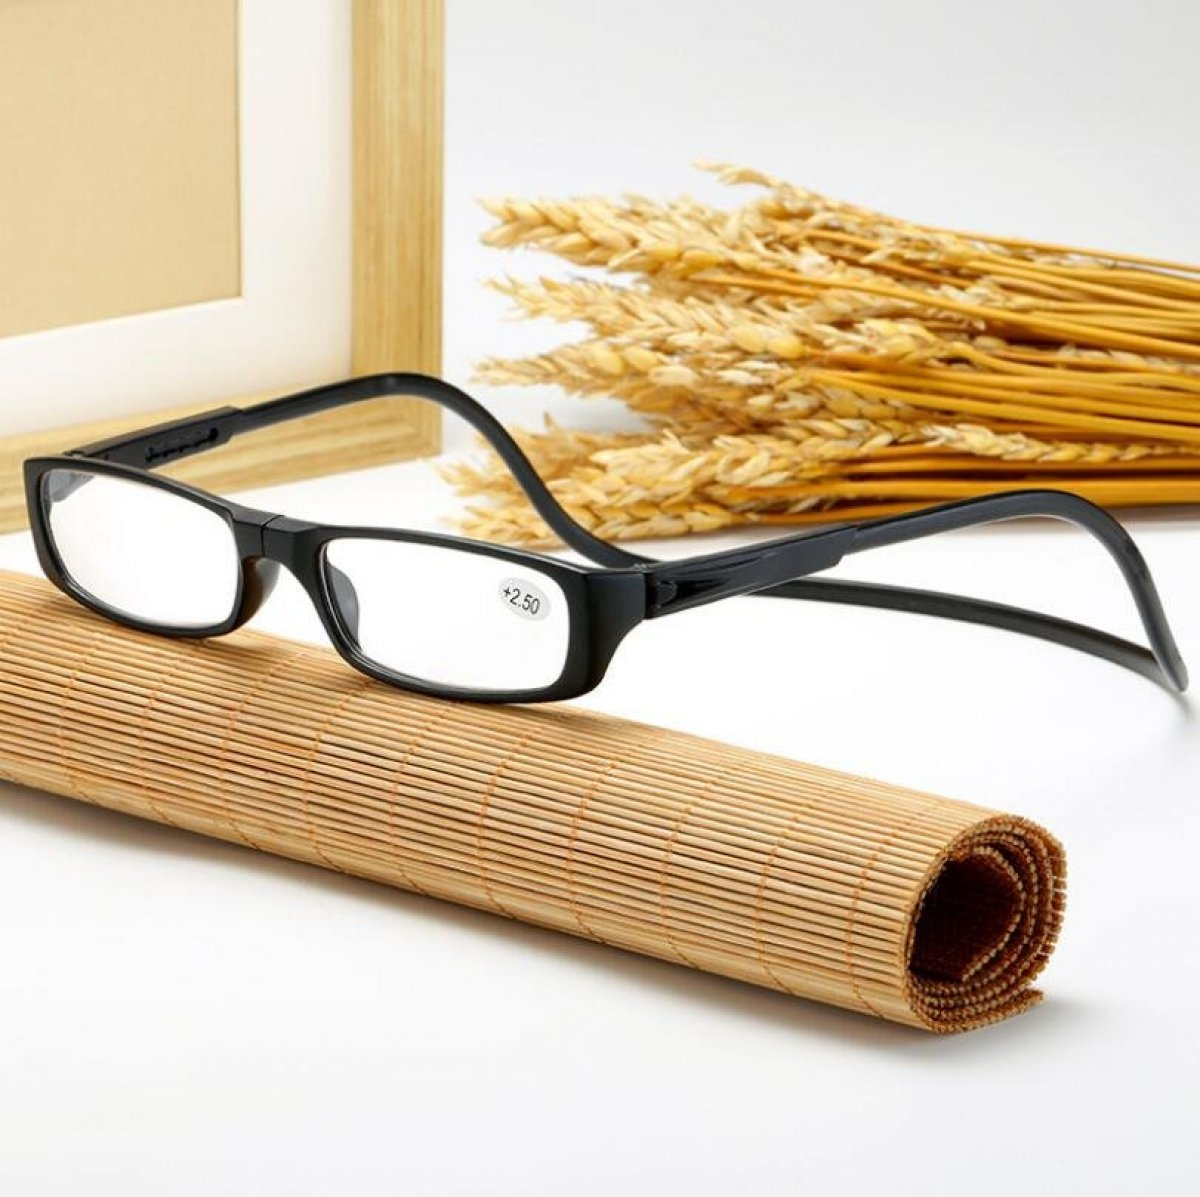 FOR YOUR EYES - Magnetic Connection Glasses - Threading hooks